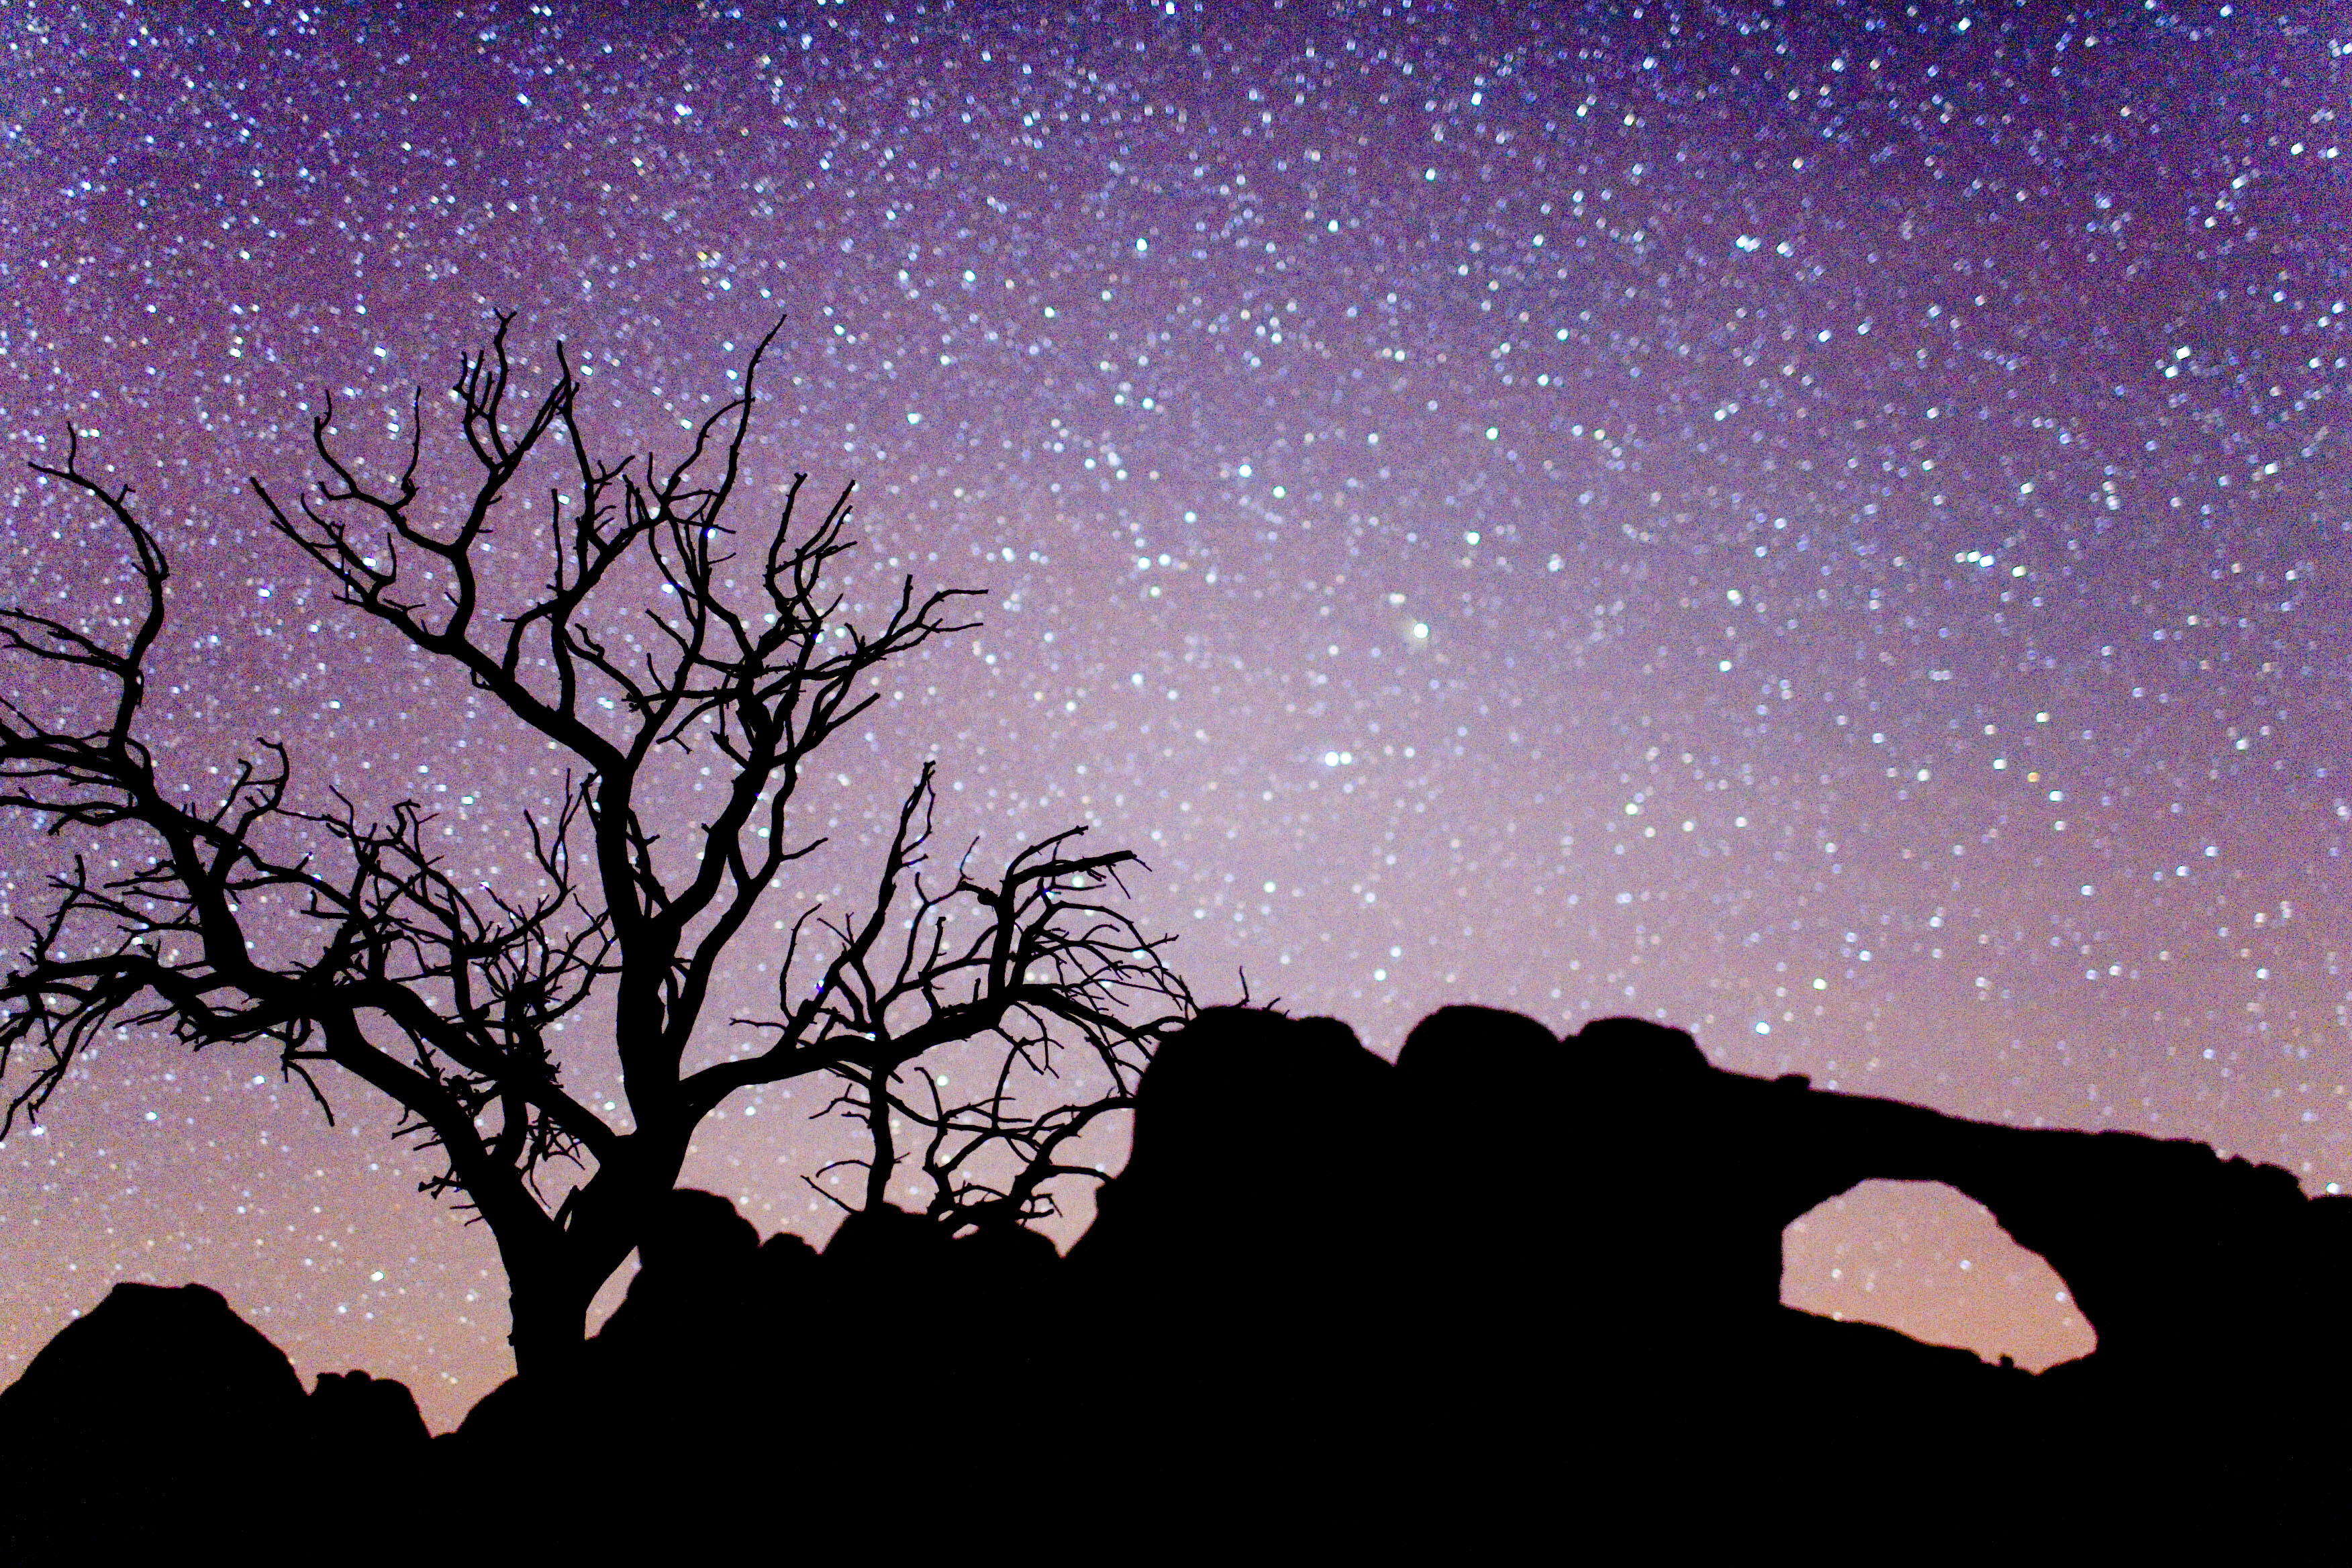 File:Arches National Park Night.jpg - Wikimedia Commons Night